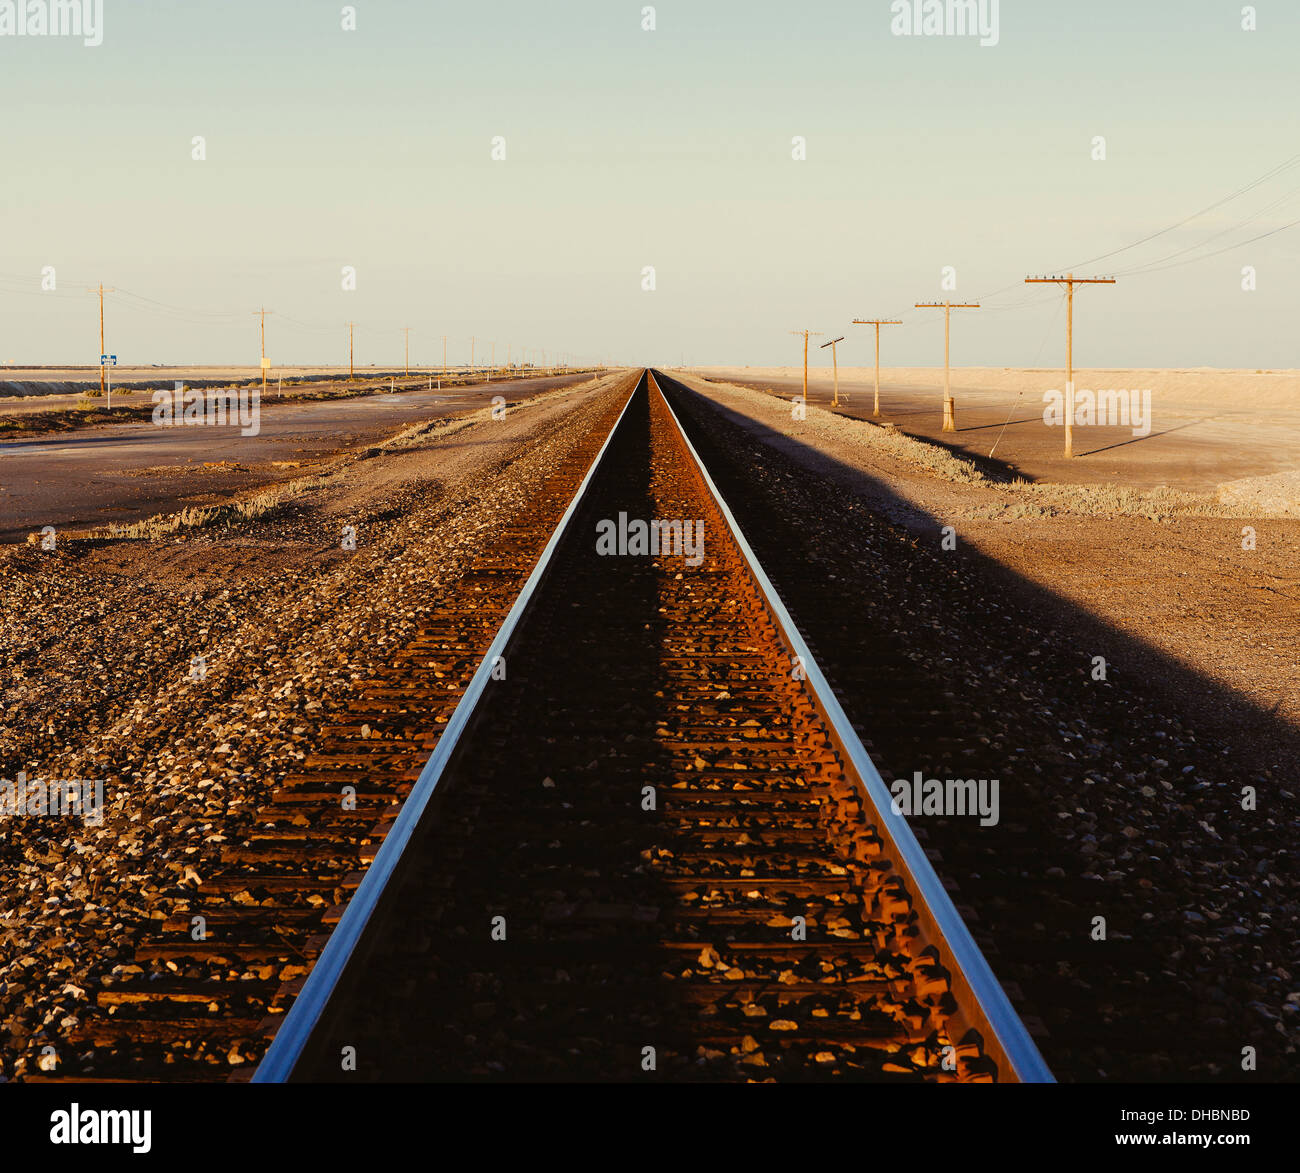 Railroad tracks extending across the flat Utah desert landscape, at dusk. - Stock Image